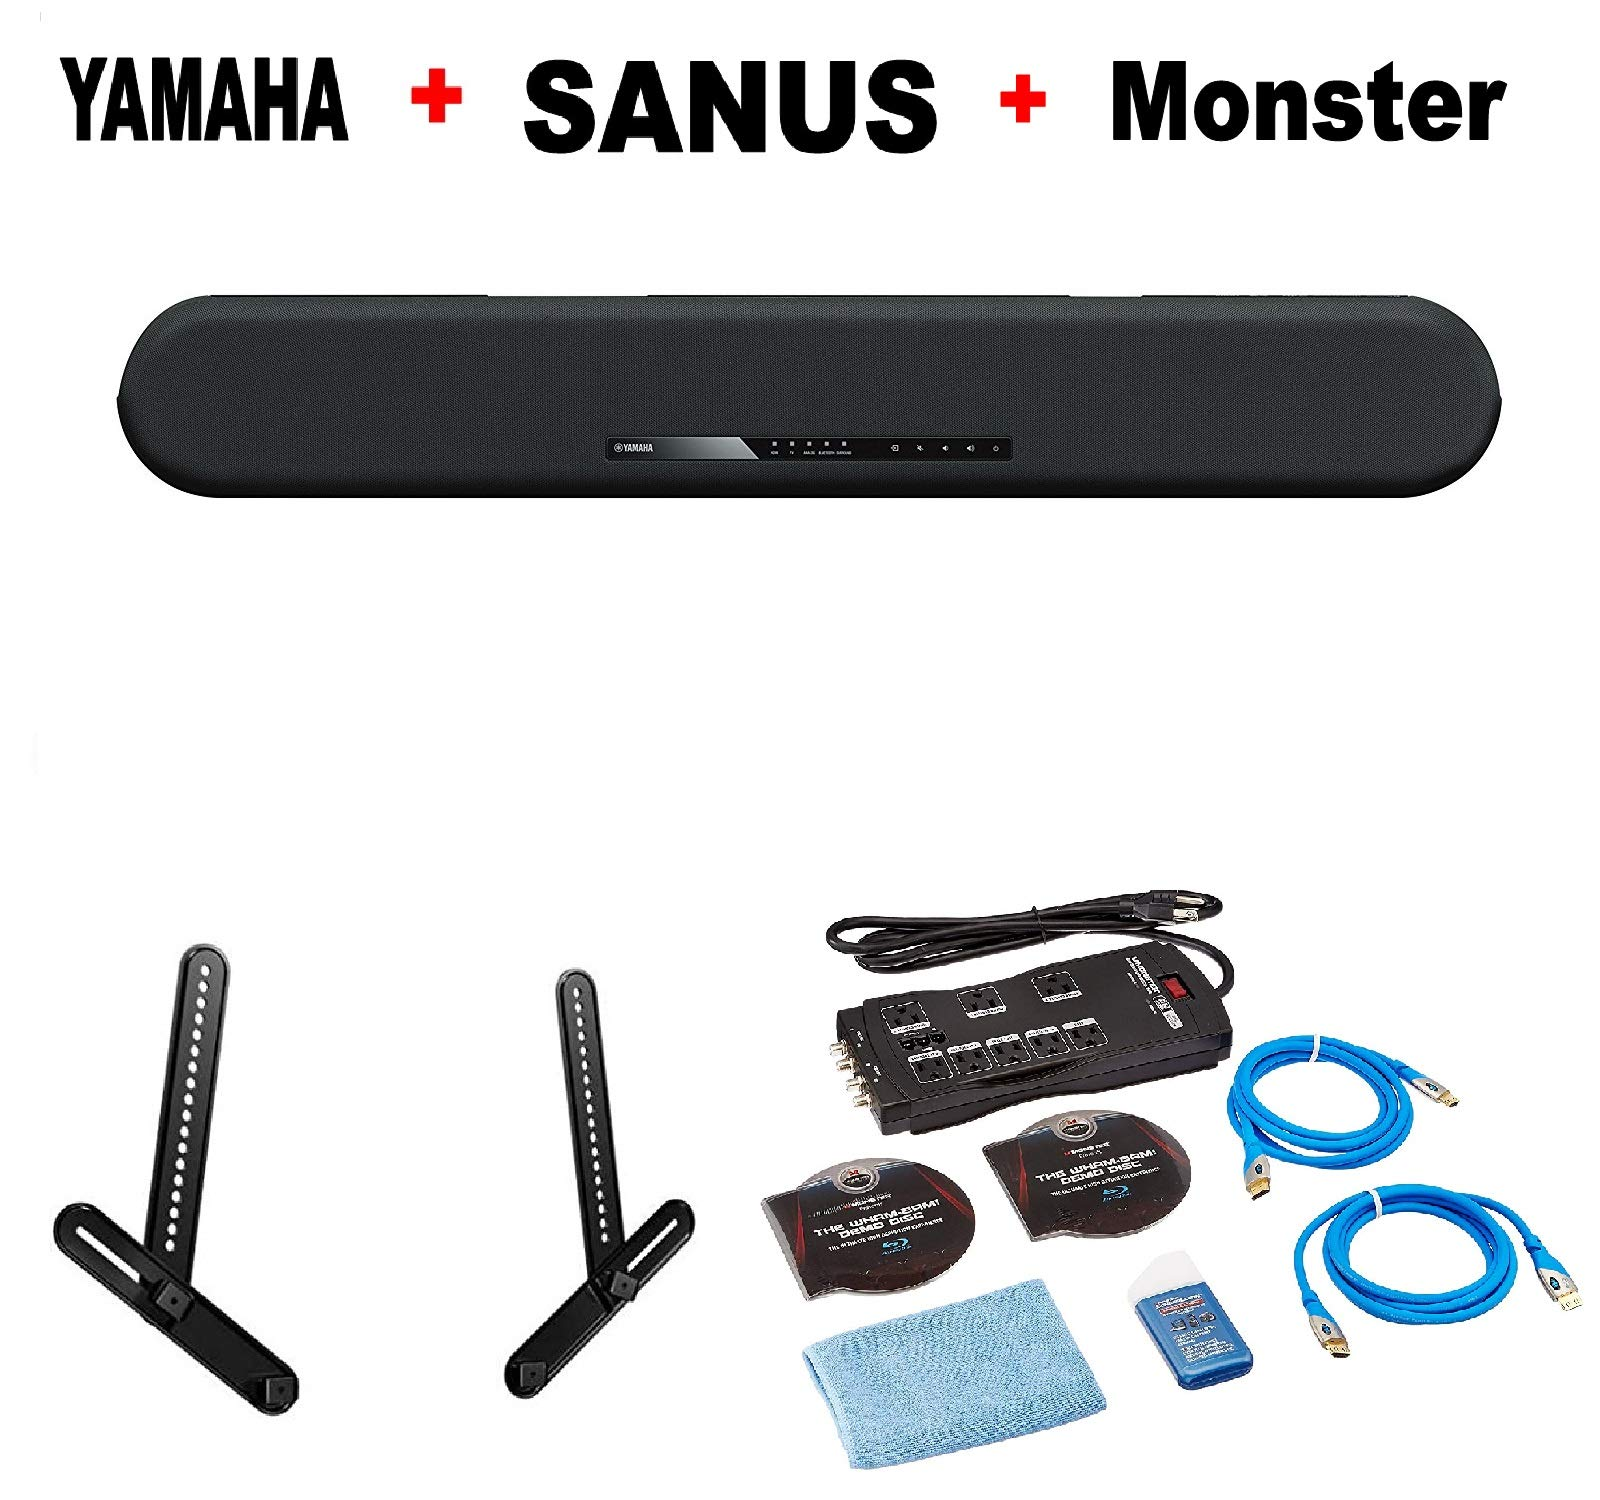 Yamaha Surround Bluetooth Soundbar Home Speaker Set of 1 B (YAS-108) + Sanus SA405-B1 Series 1 Soundbar Mount Black + Monster Home Theater Accessory Bundle Bundle by Yamaha